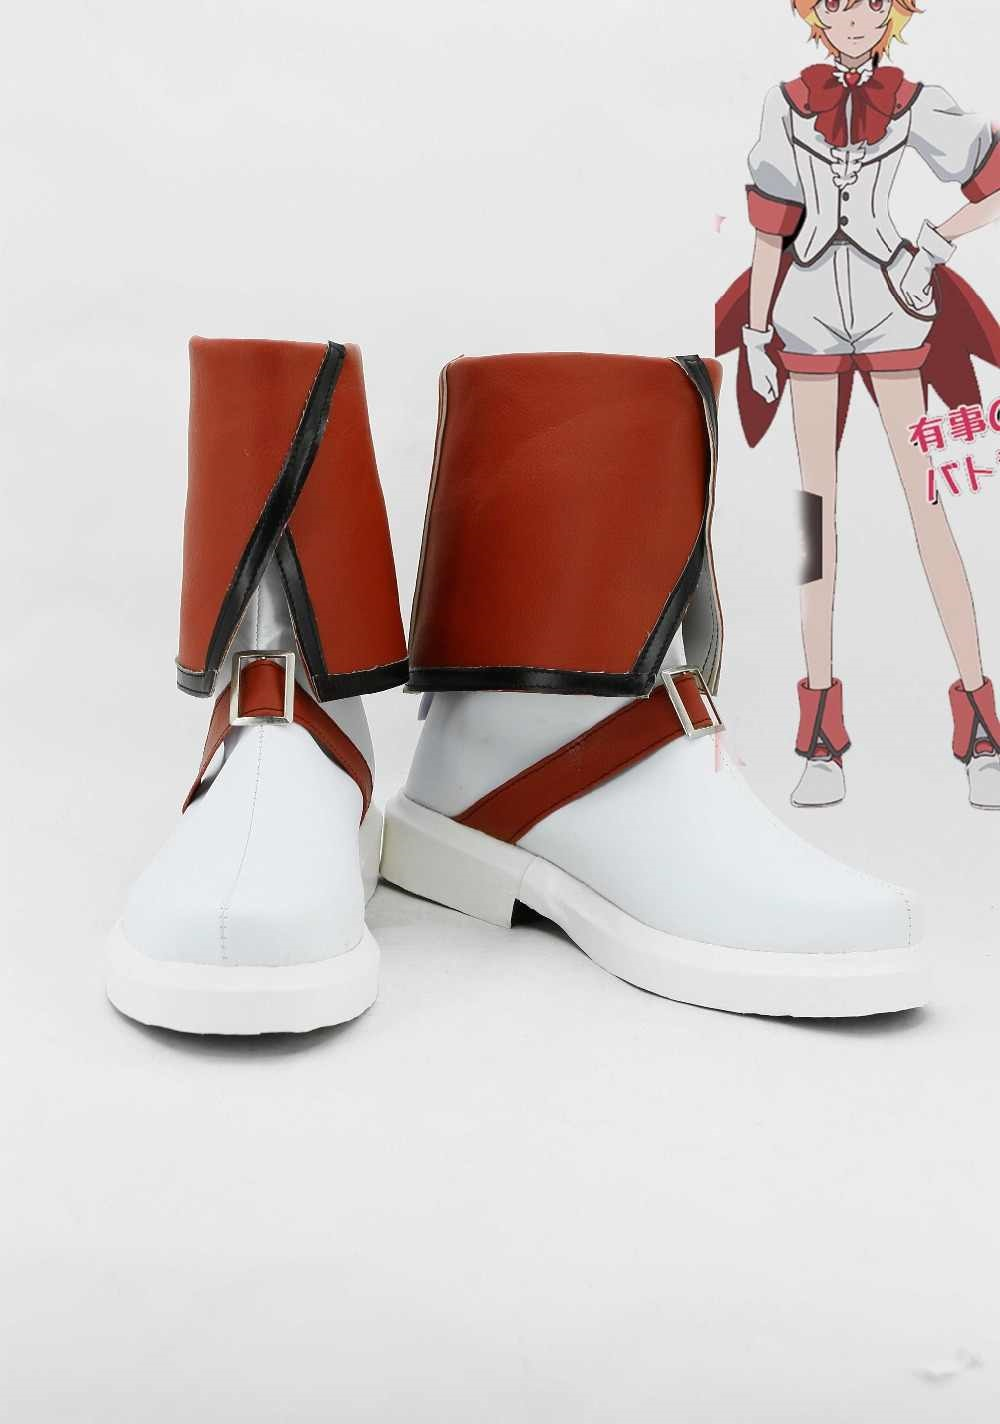 Cute High Earth Defense Club Love Defense Club Yumoto Hakone Boots Cosplay Shoes